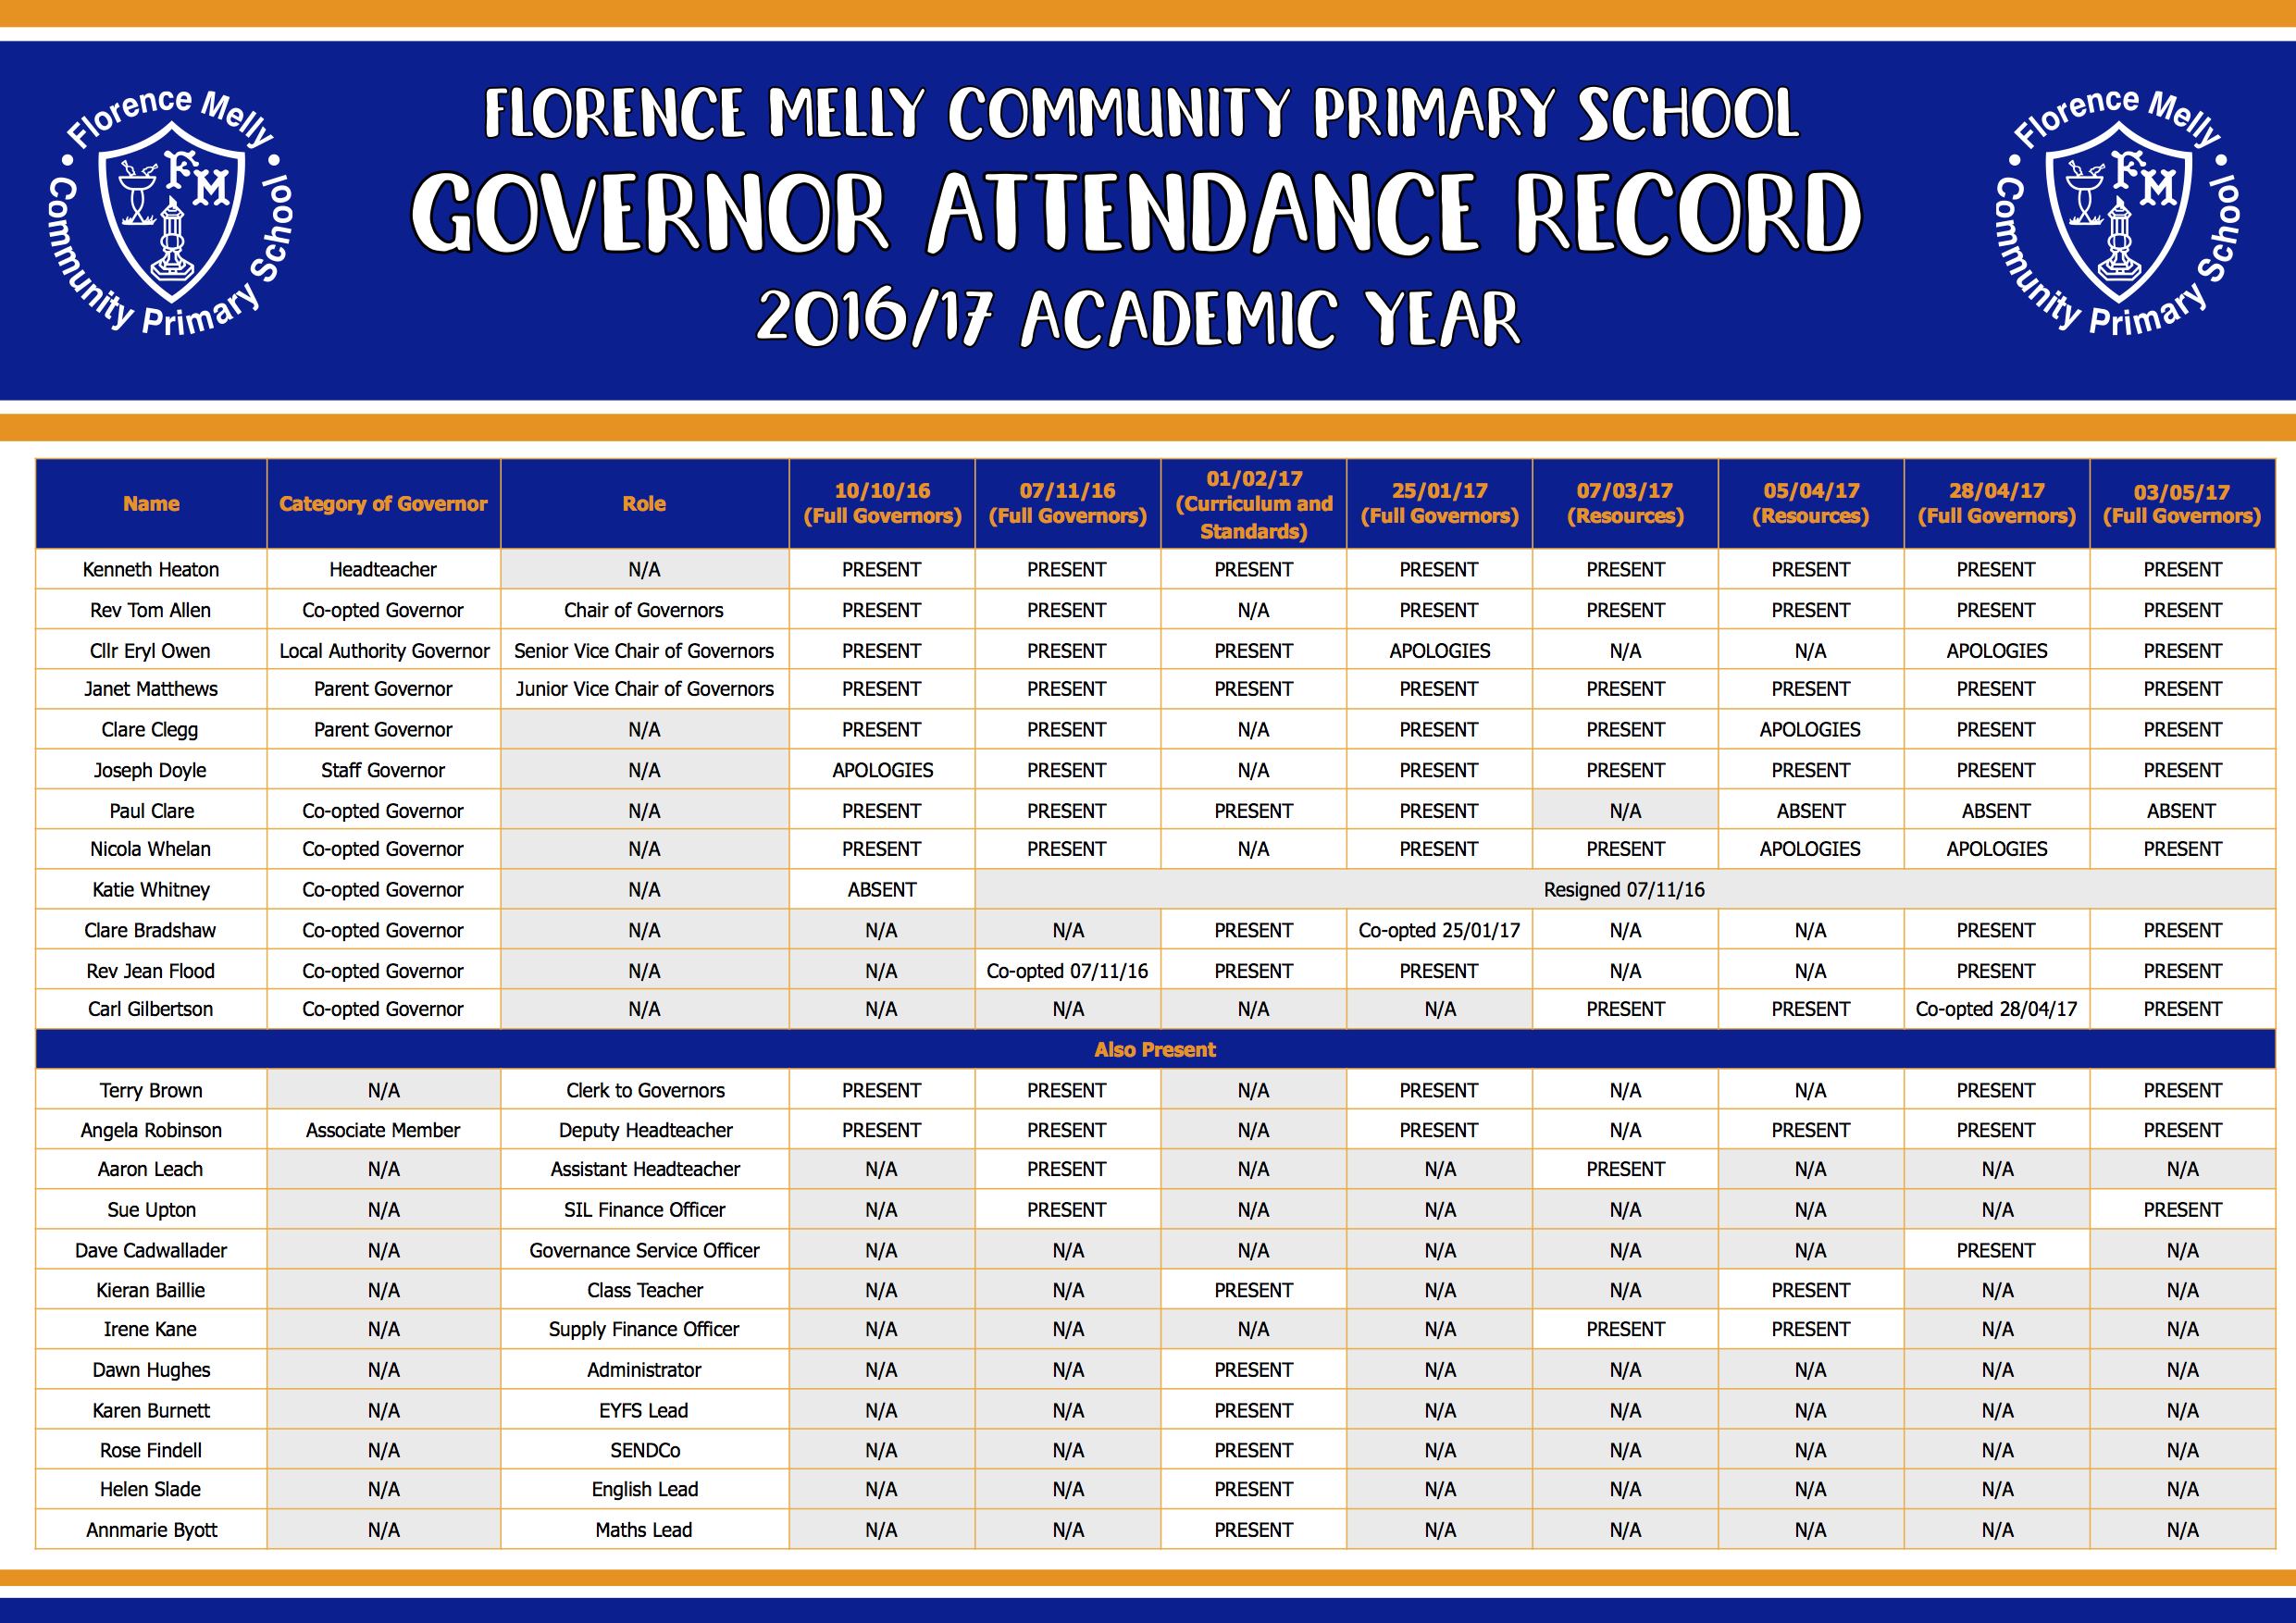 Governor Attendance Record 2016:17